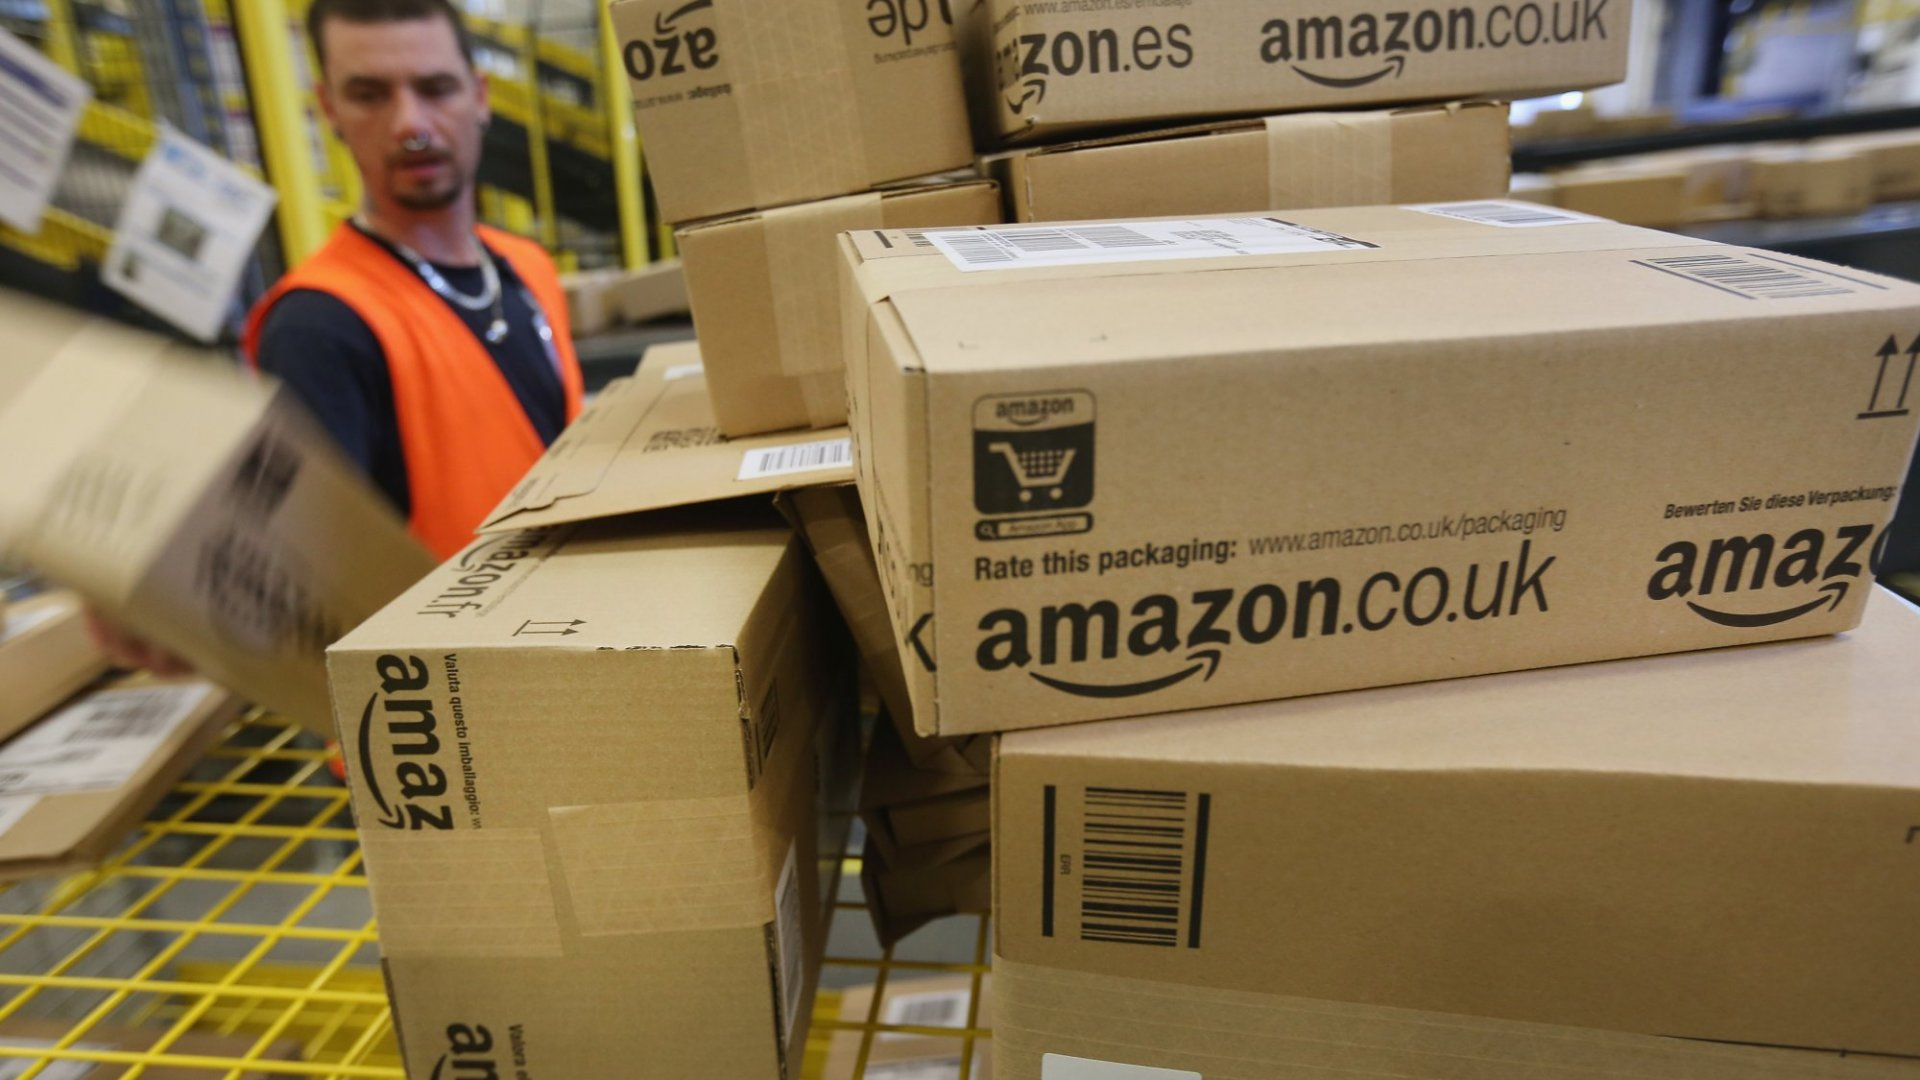 The EU Could Fine Amazon Billions in Antitrust Probe. What You Should Know